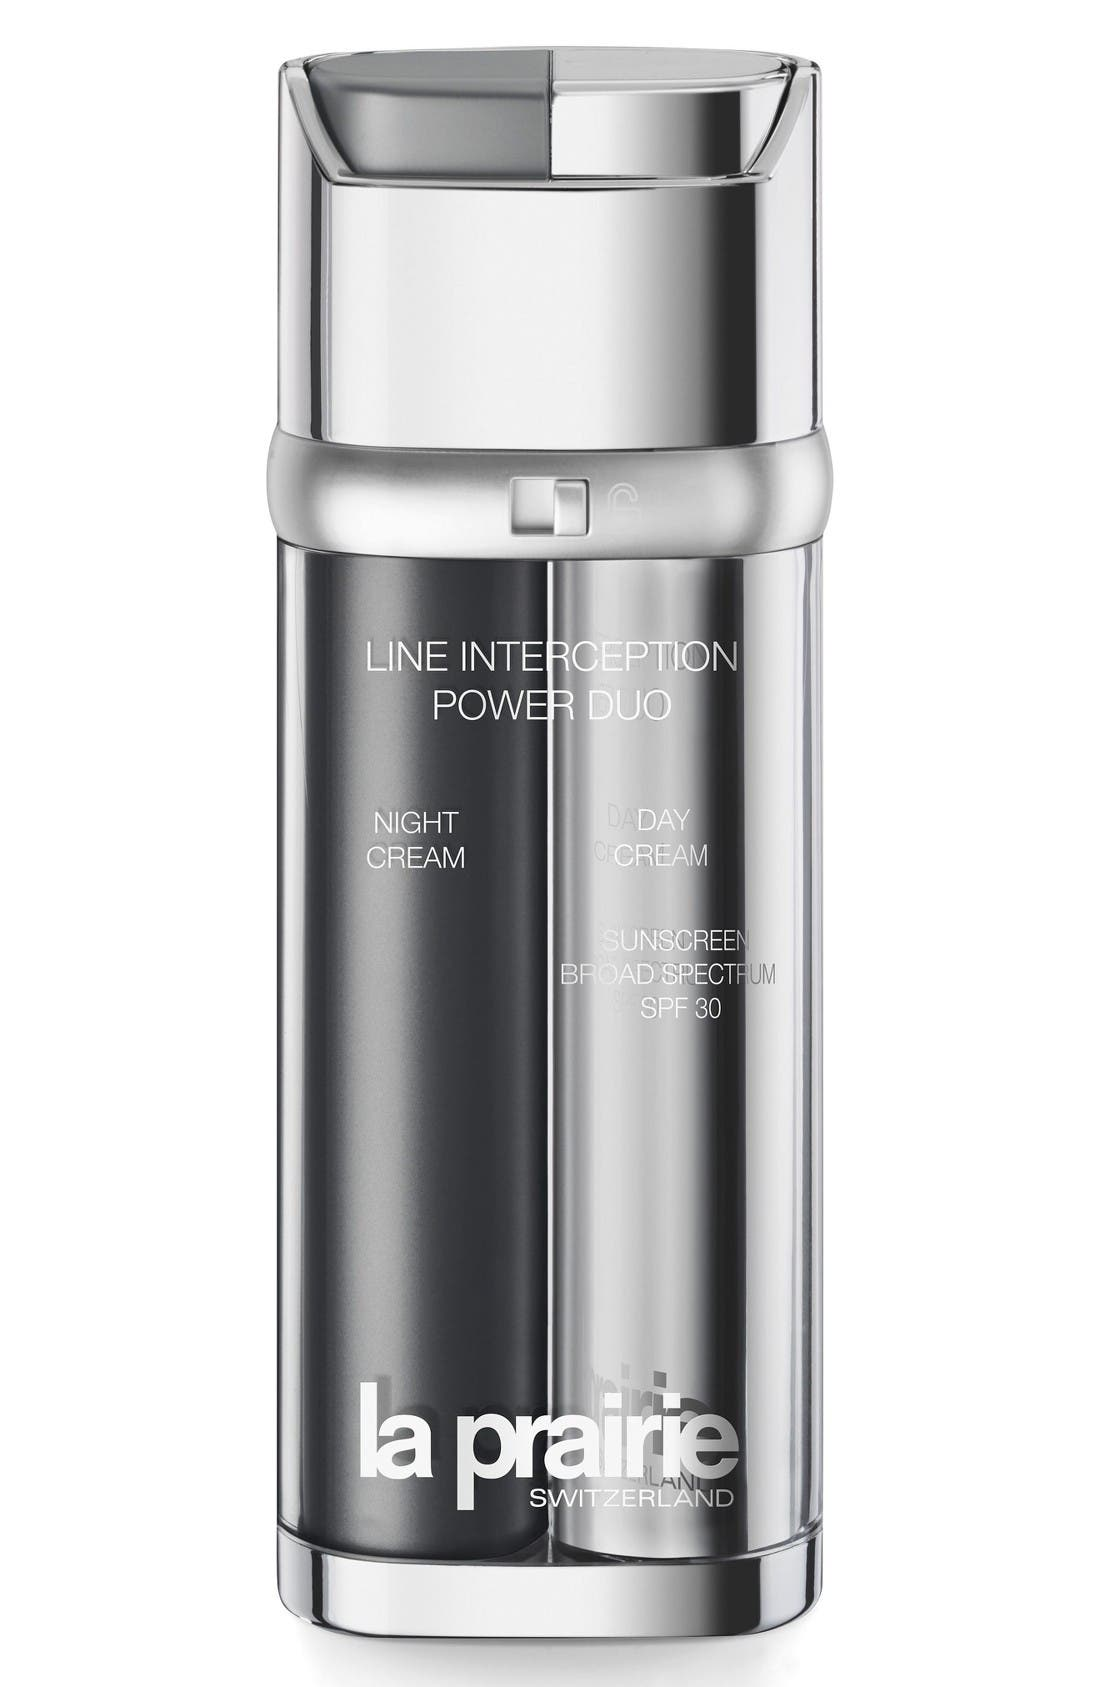 Alternate Image 2  - La Prairie Line Interception Power Duo Cream